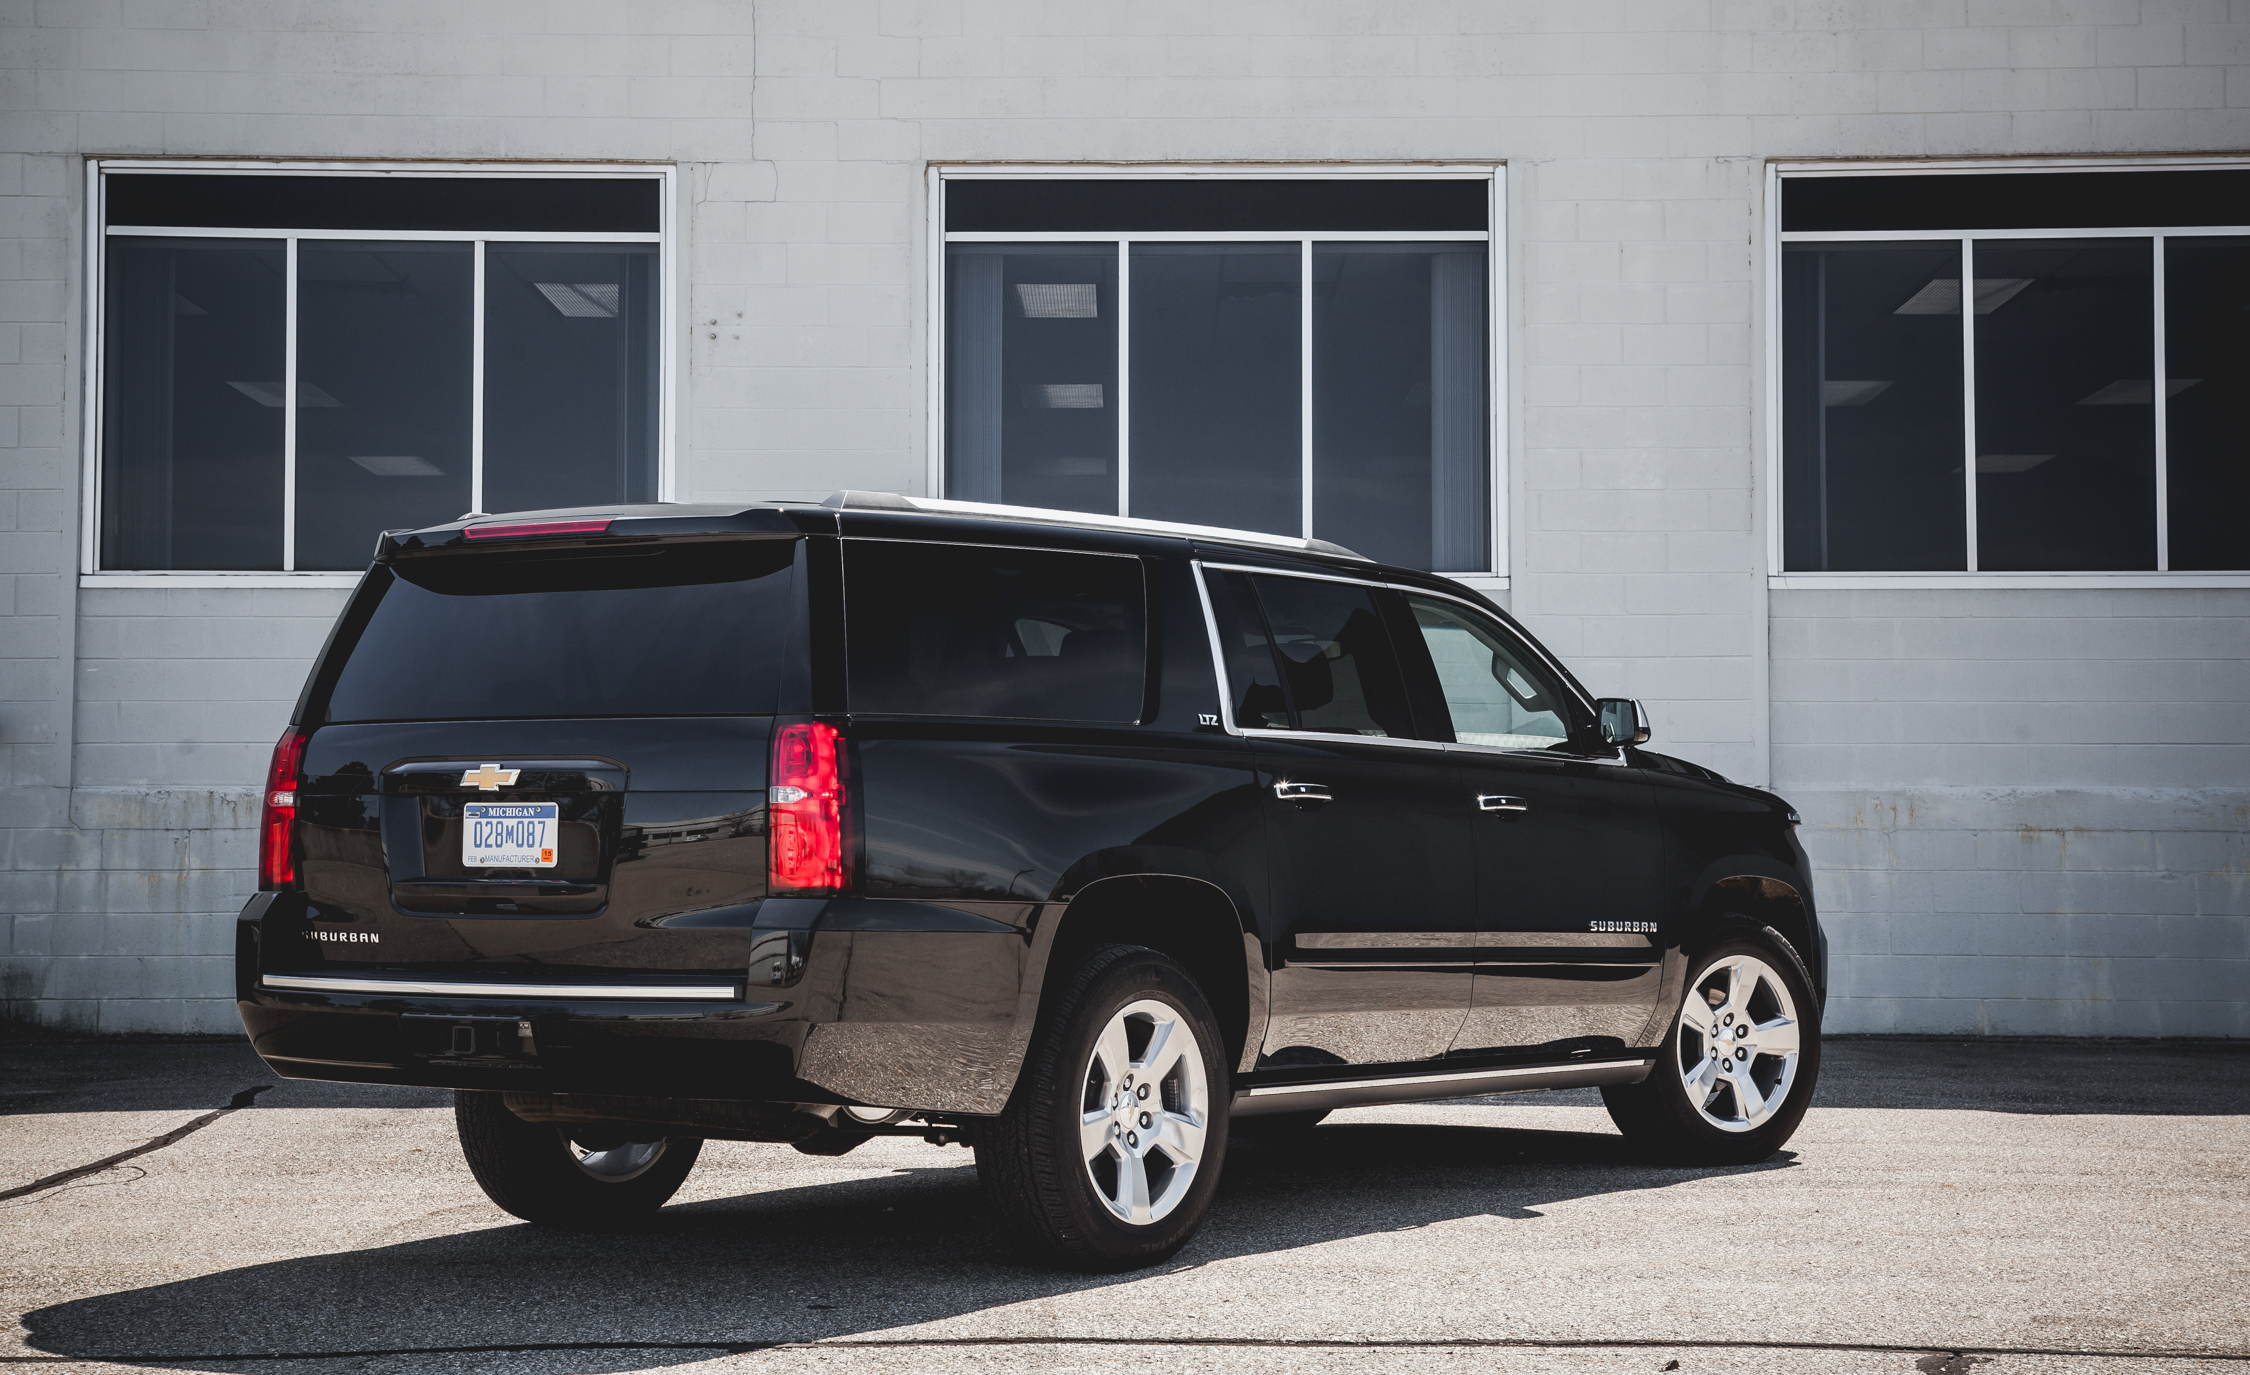 2015 Chevrolet Suburban LTZ Exterior Body Rear and Side